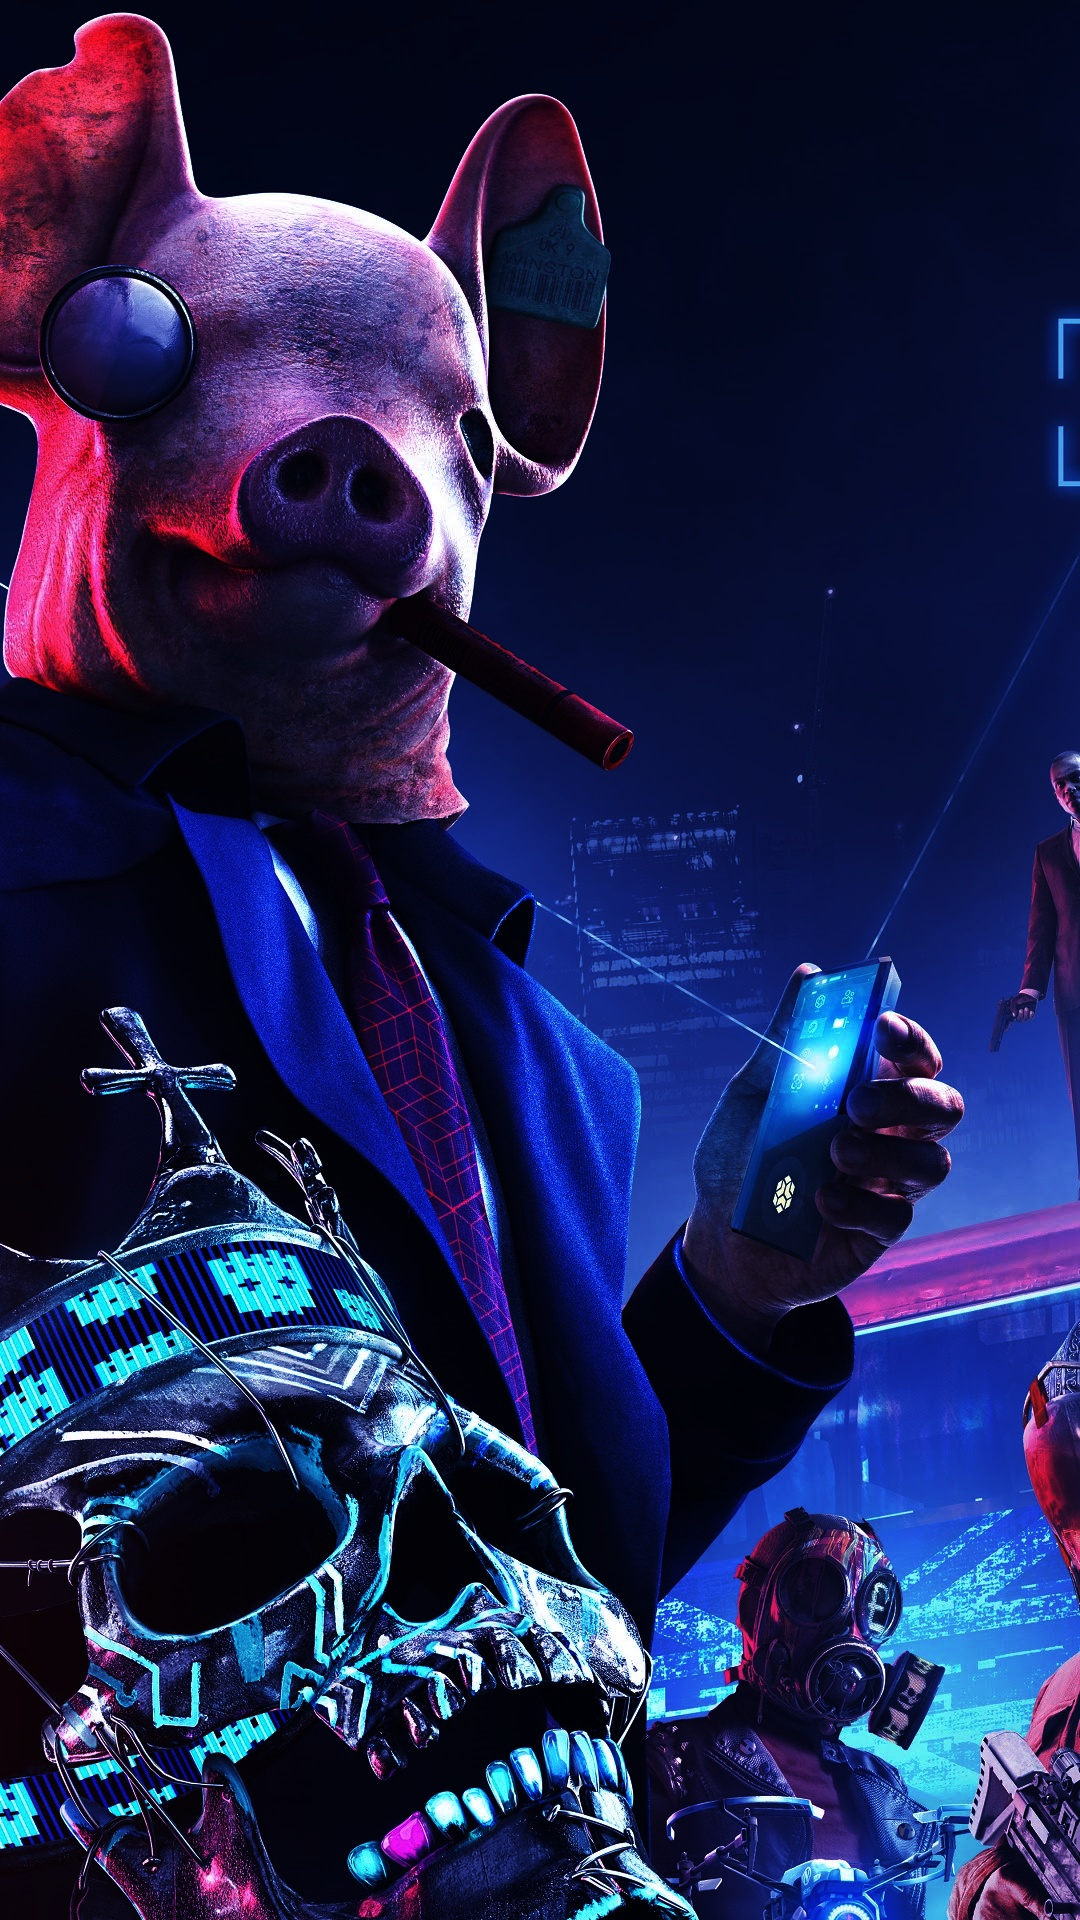 watch dogs wallpaper iphone mobile